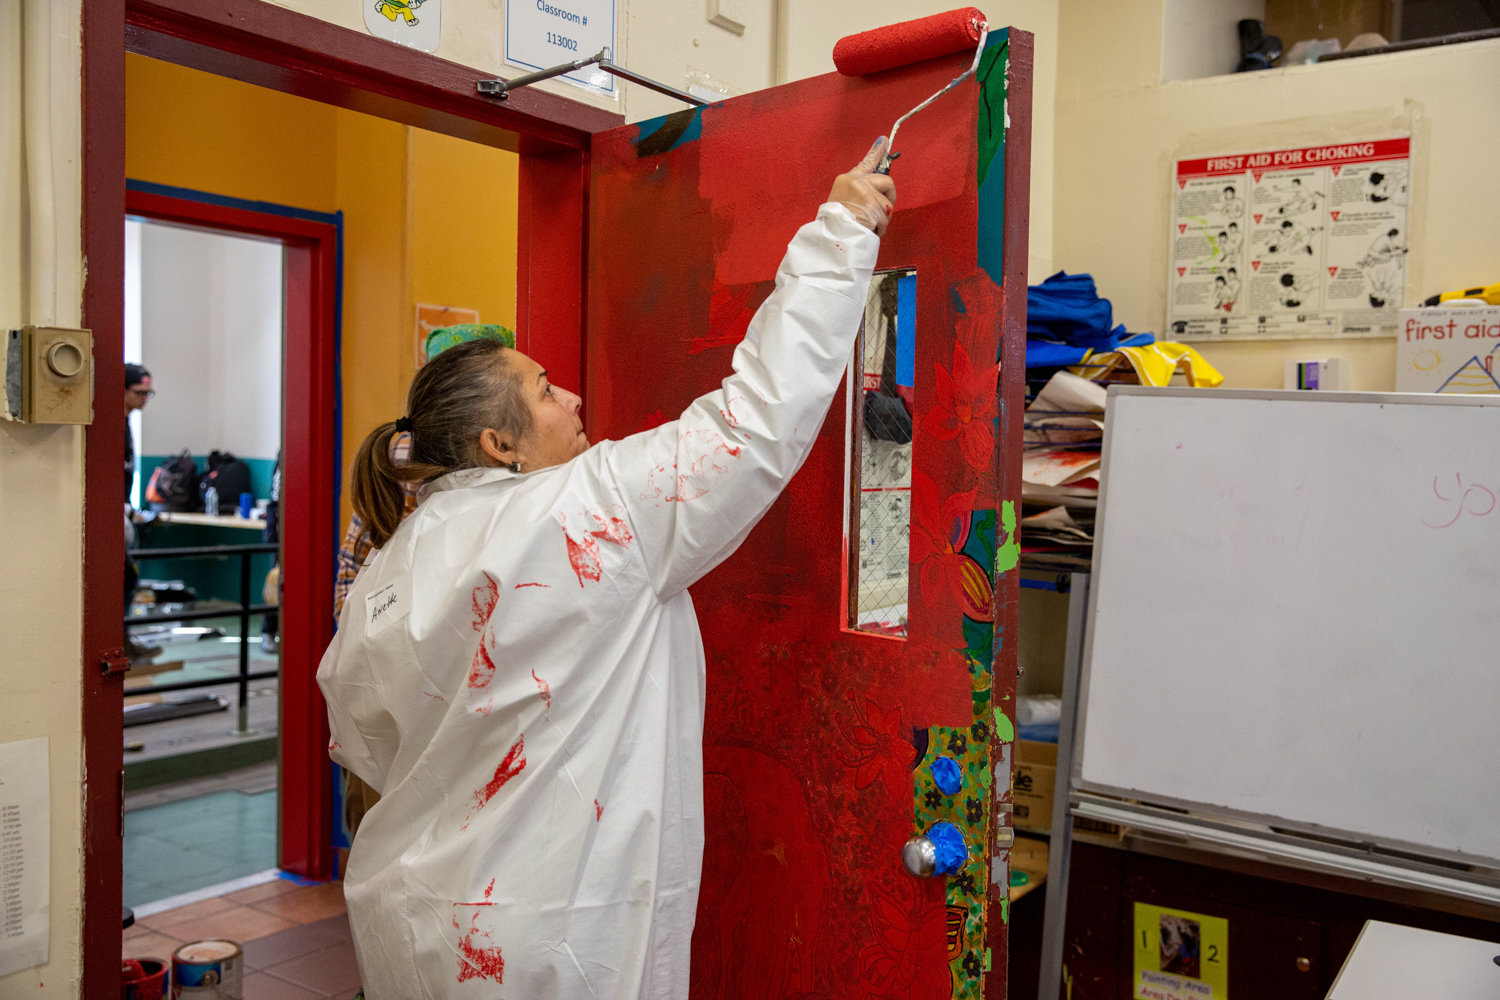 Anette Díaz Rivera, a business representative for Local Union No. 3 IBEW, paints a door in the Kingsbridge Heights Community Center.